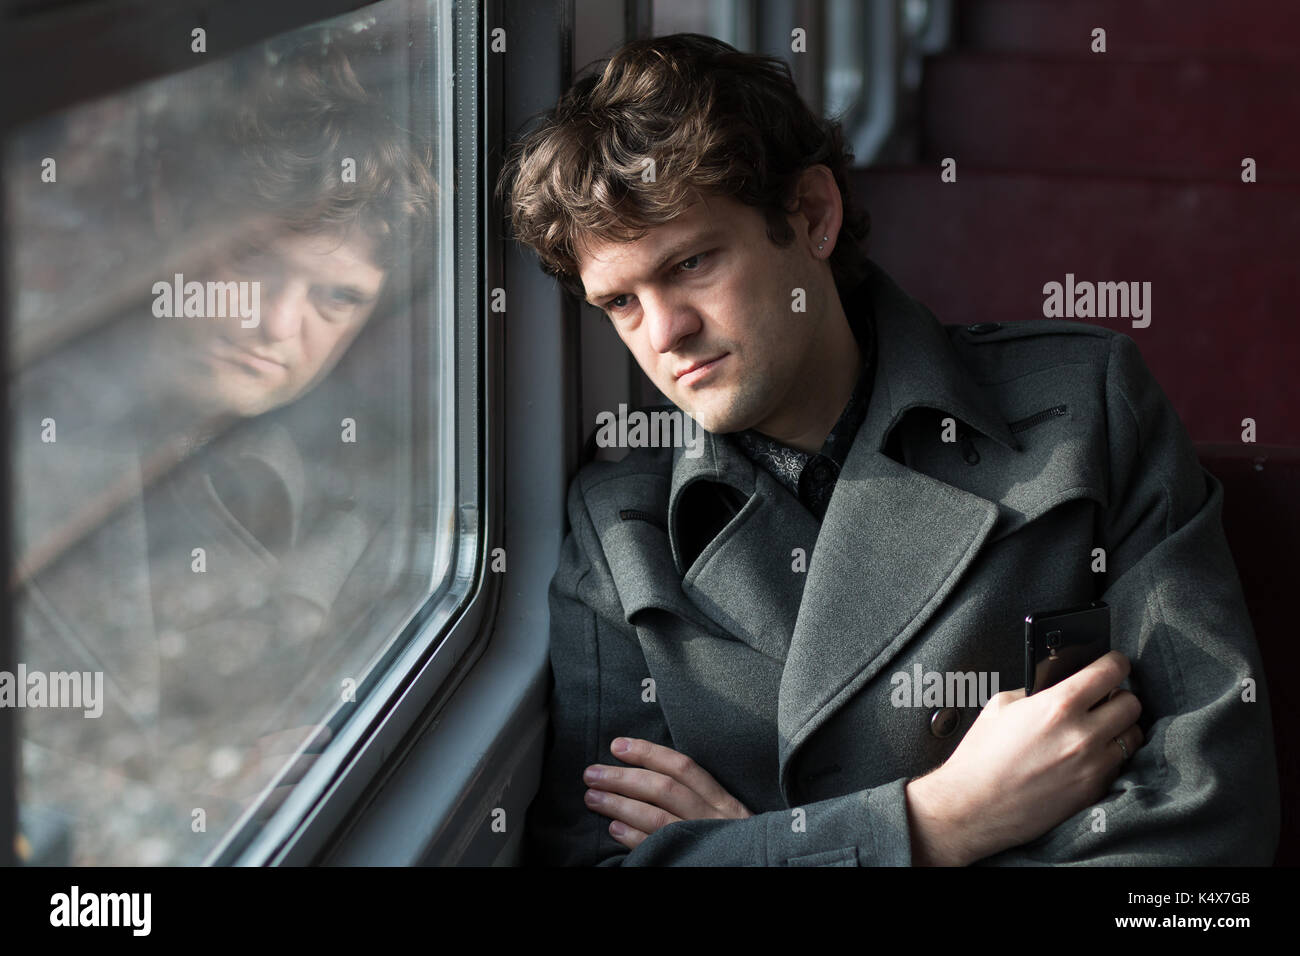 Traveling by train. Sad man traveling by train, looking through the window and thinking about unrequited love squeezing - Stock Image